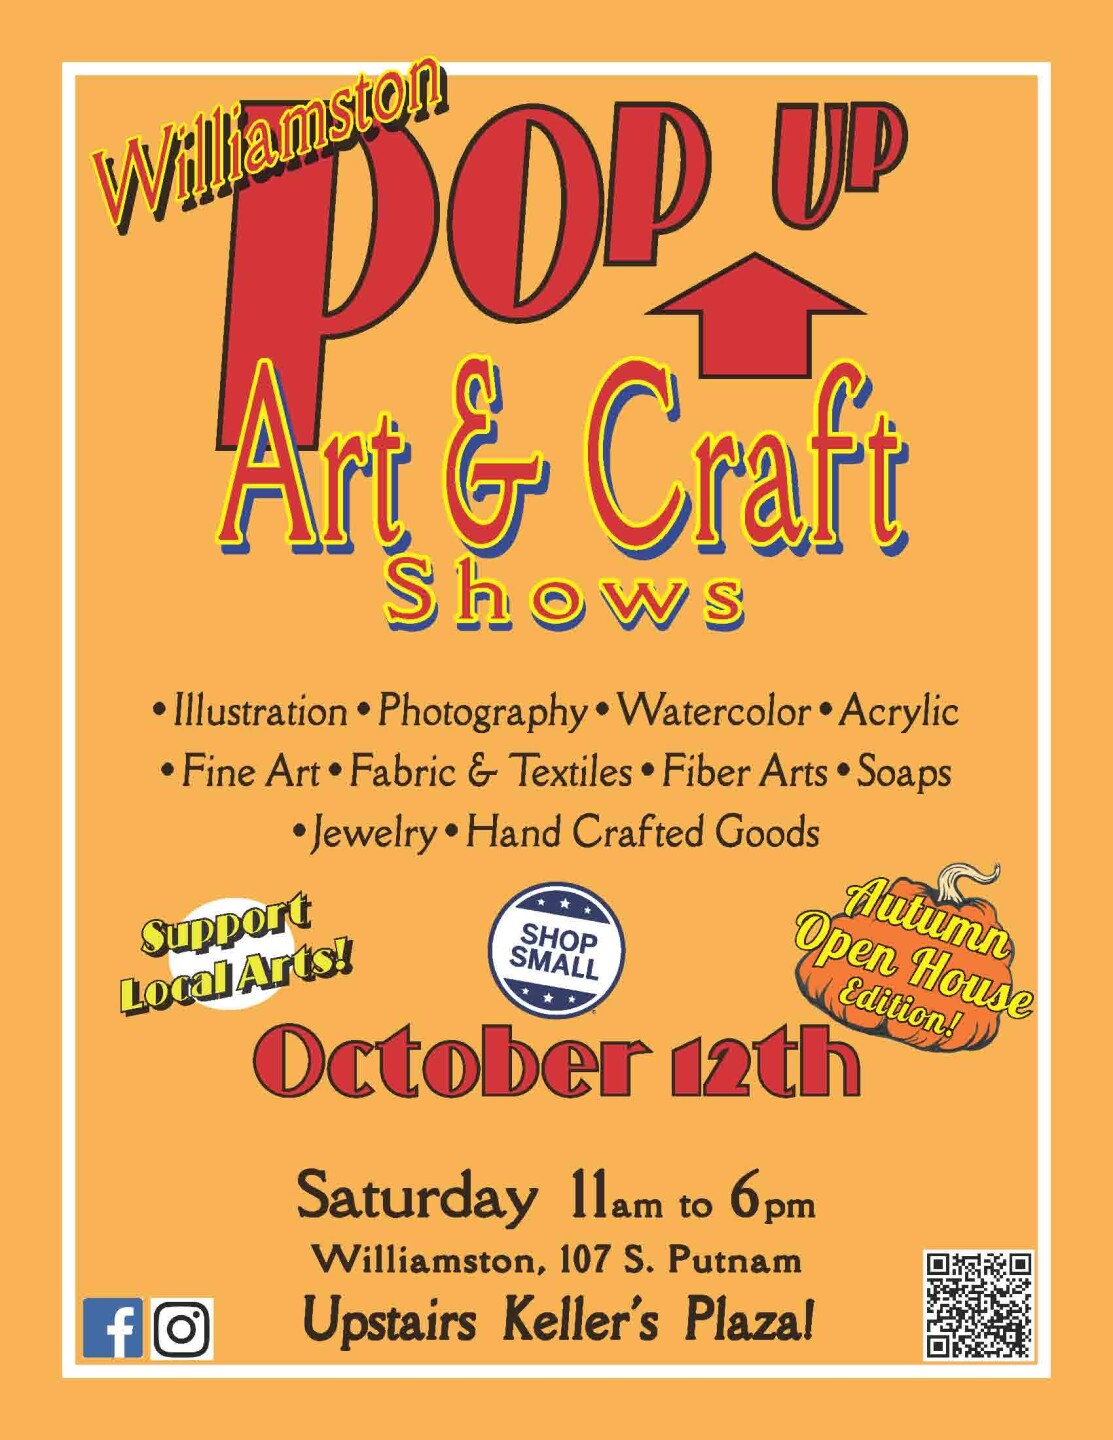 Williamston Pop Up Arts & Crafts